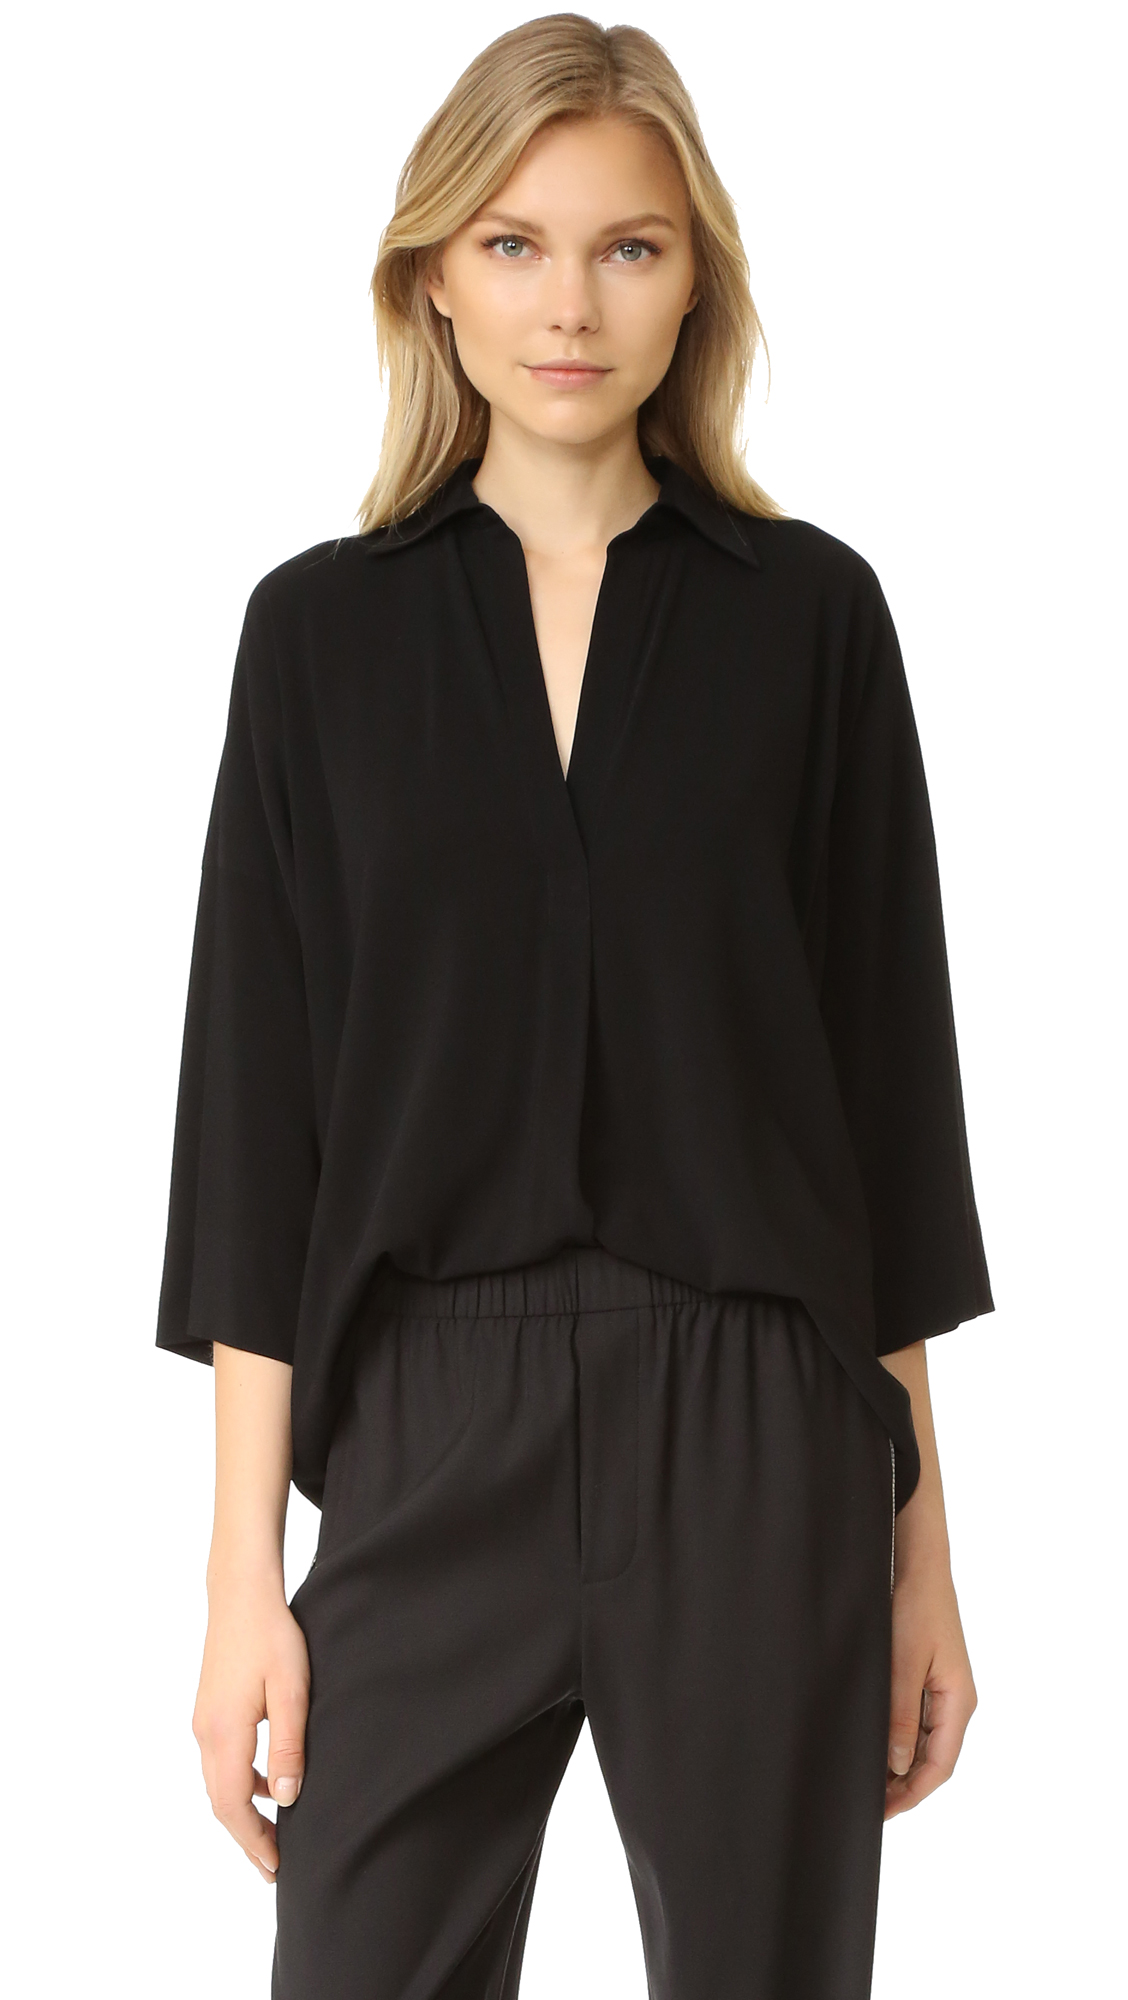 Vince Oversized Blouse - Black at Shopbop